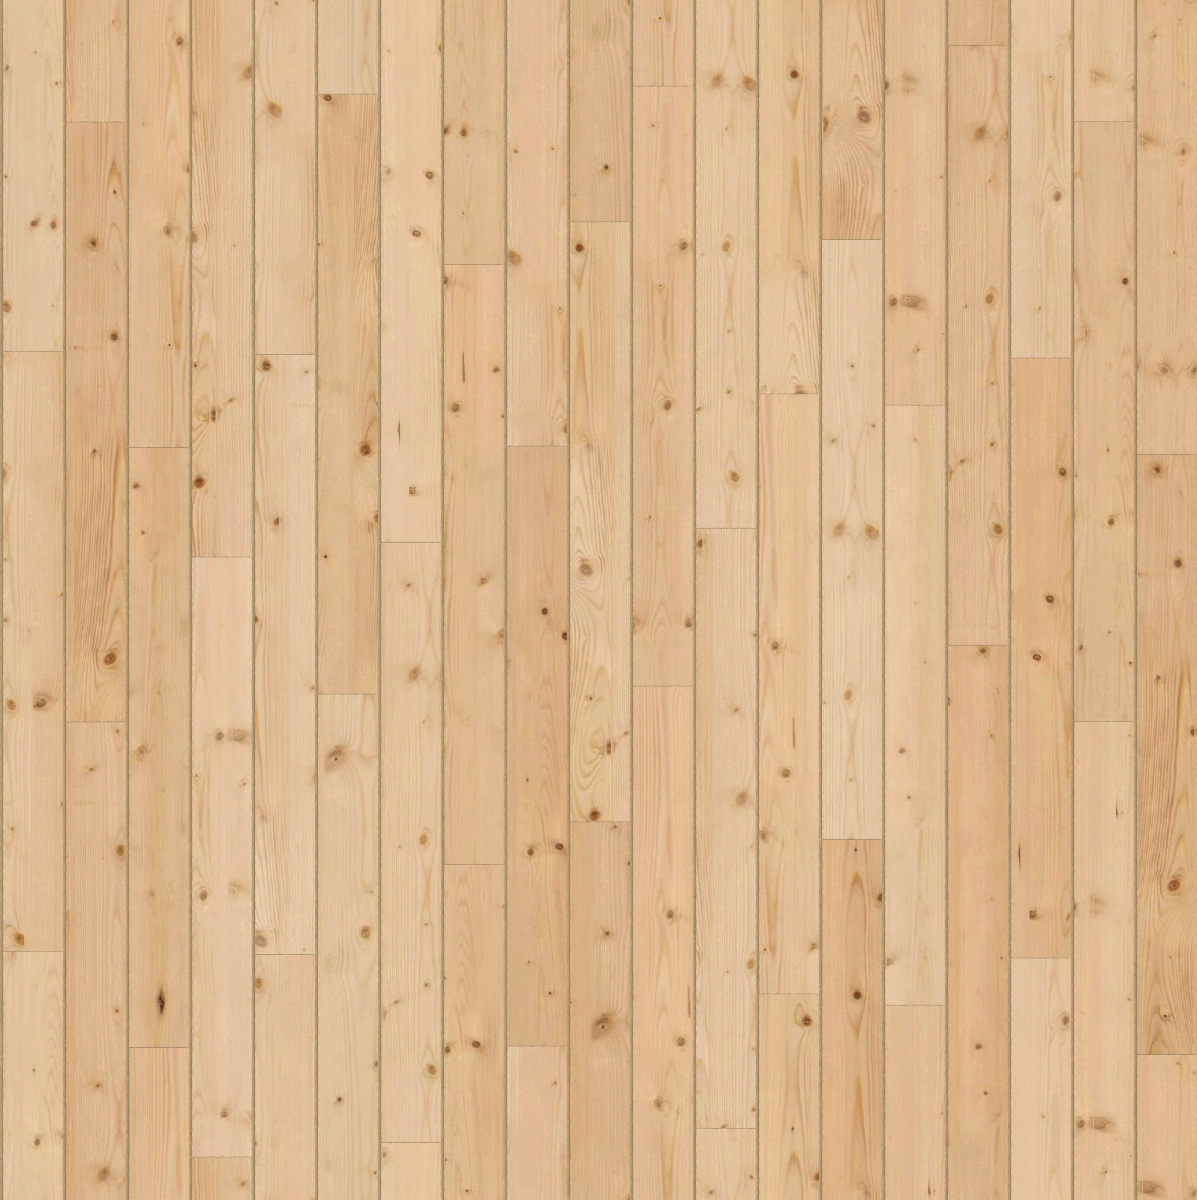 A seamless wood texture with knotted timber boards arranged in a staggered pattern